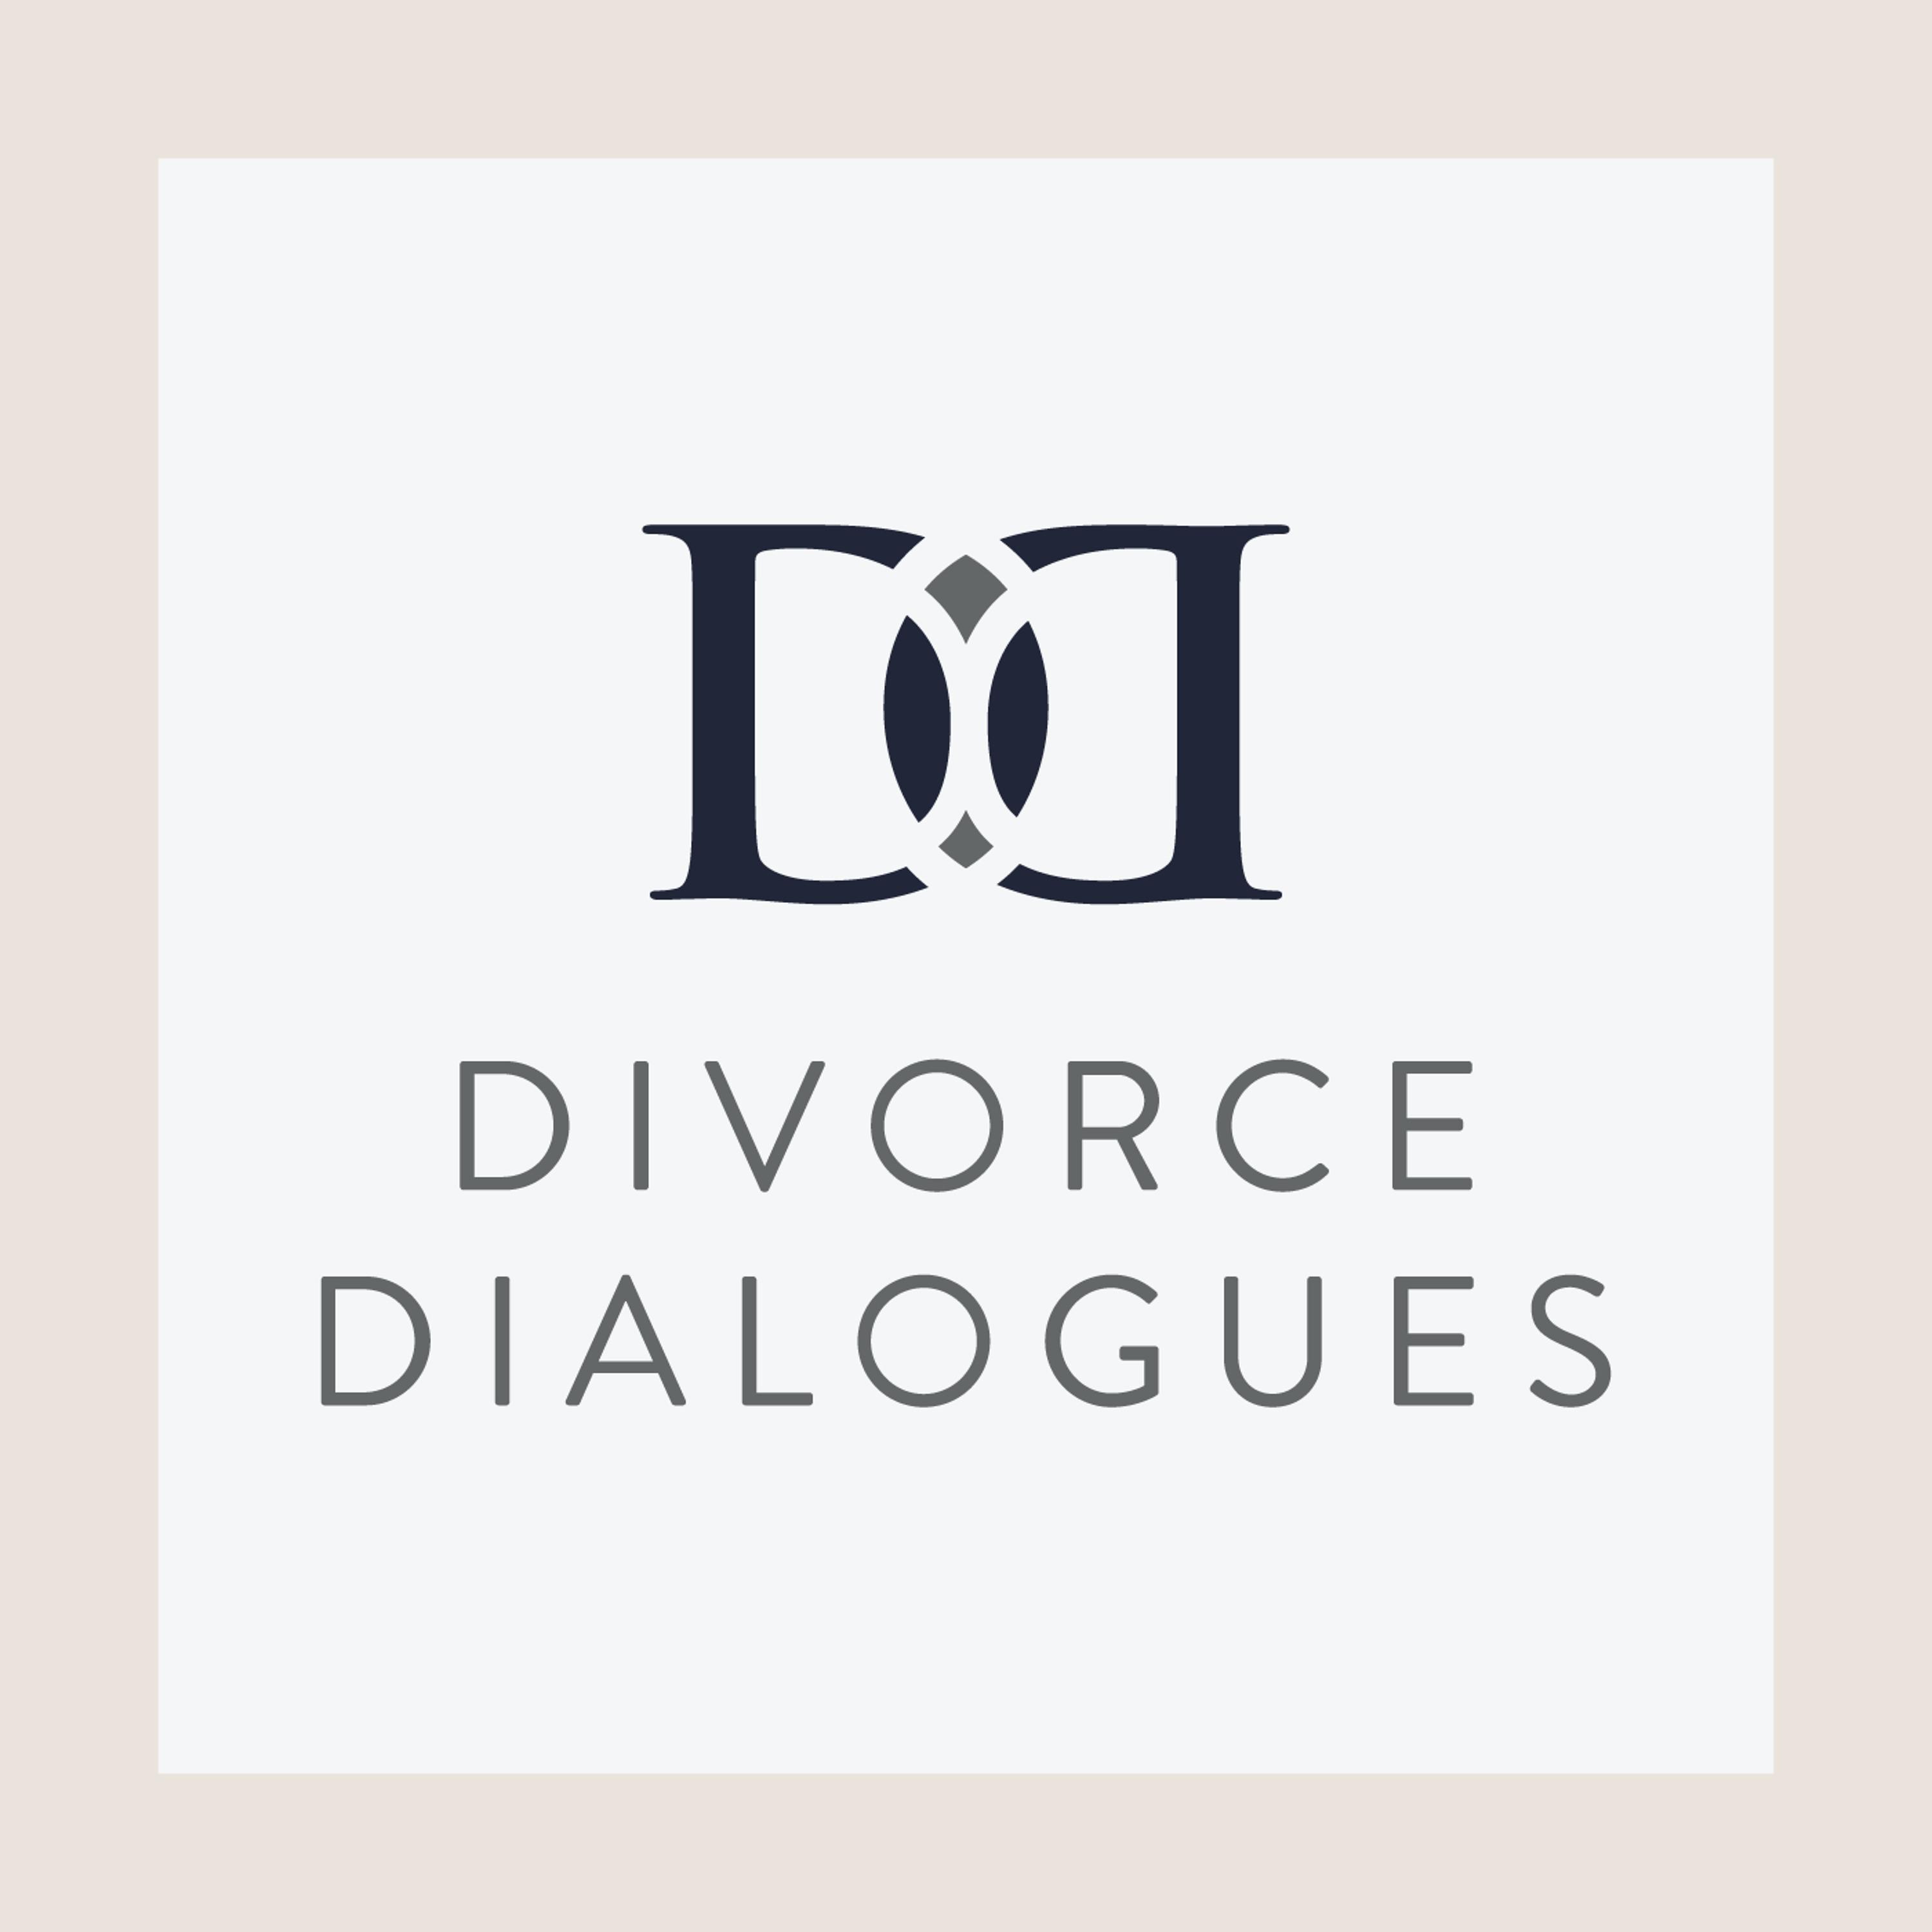 Divorce Dialogues - Recognizing the Complexity of Divorce with Integrative Law with J. Kim Wright